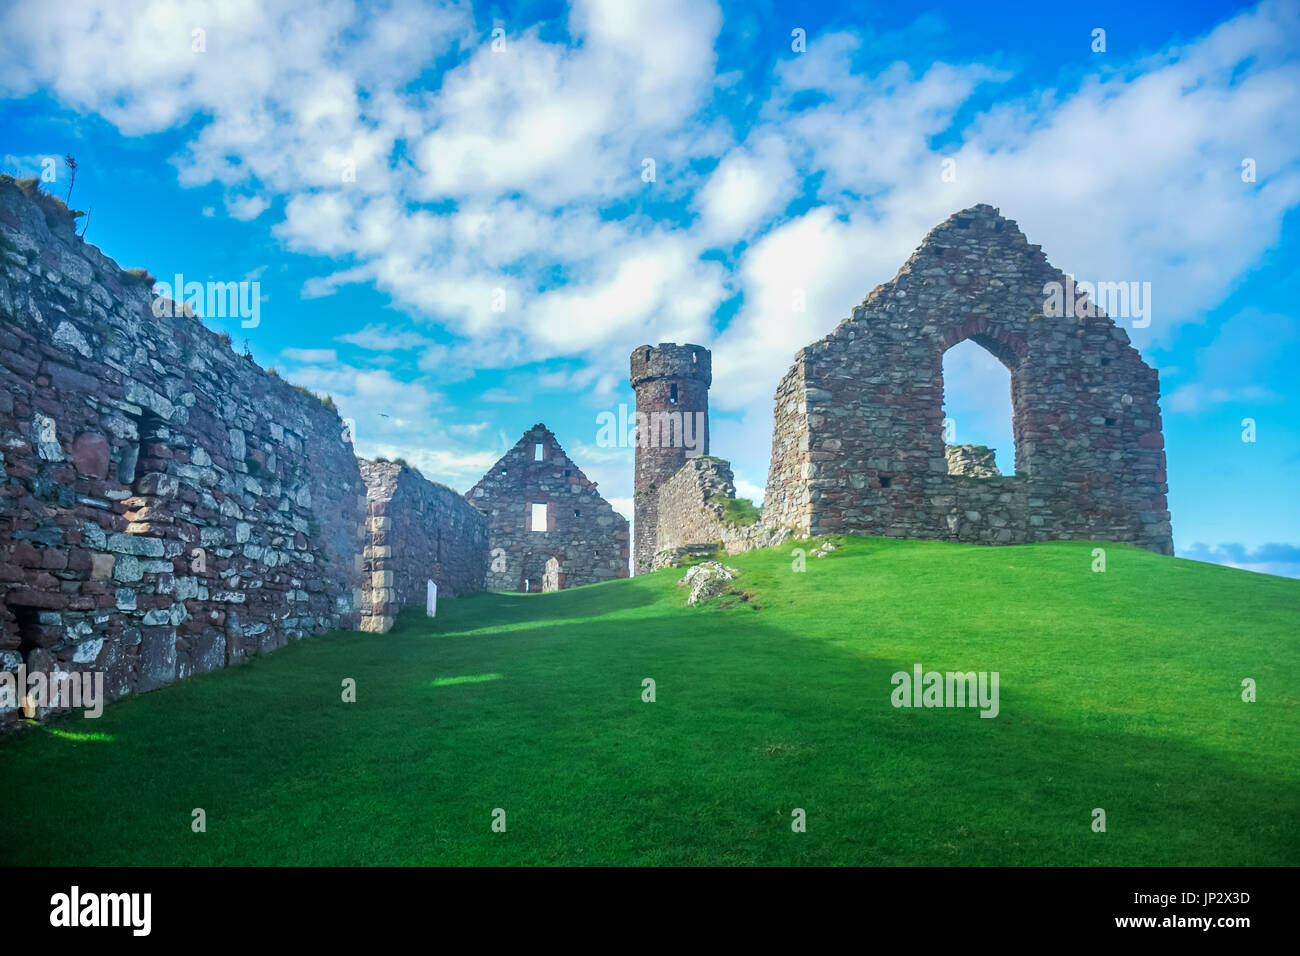 Landscape view of Peel Castle constructed by vikings on top of Peel hill, Isle of Man - Stock Image